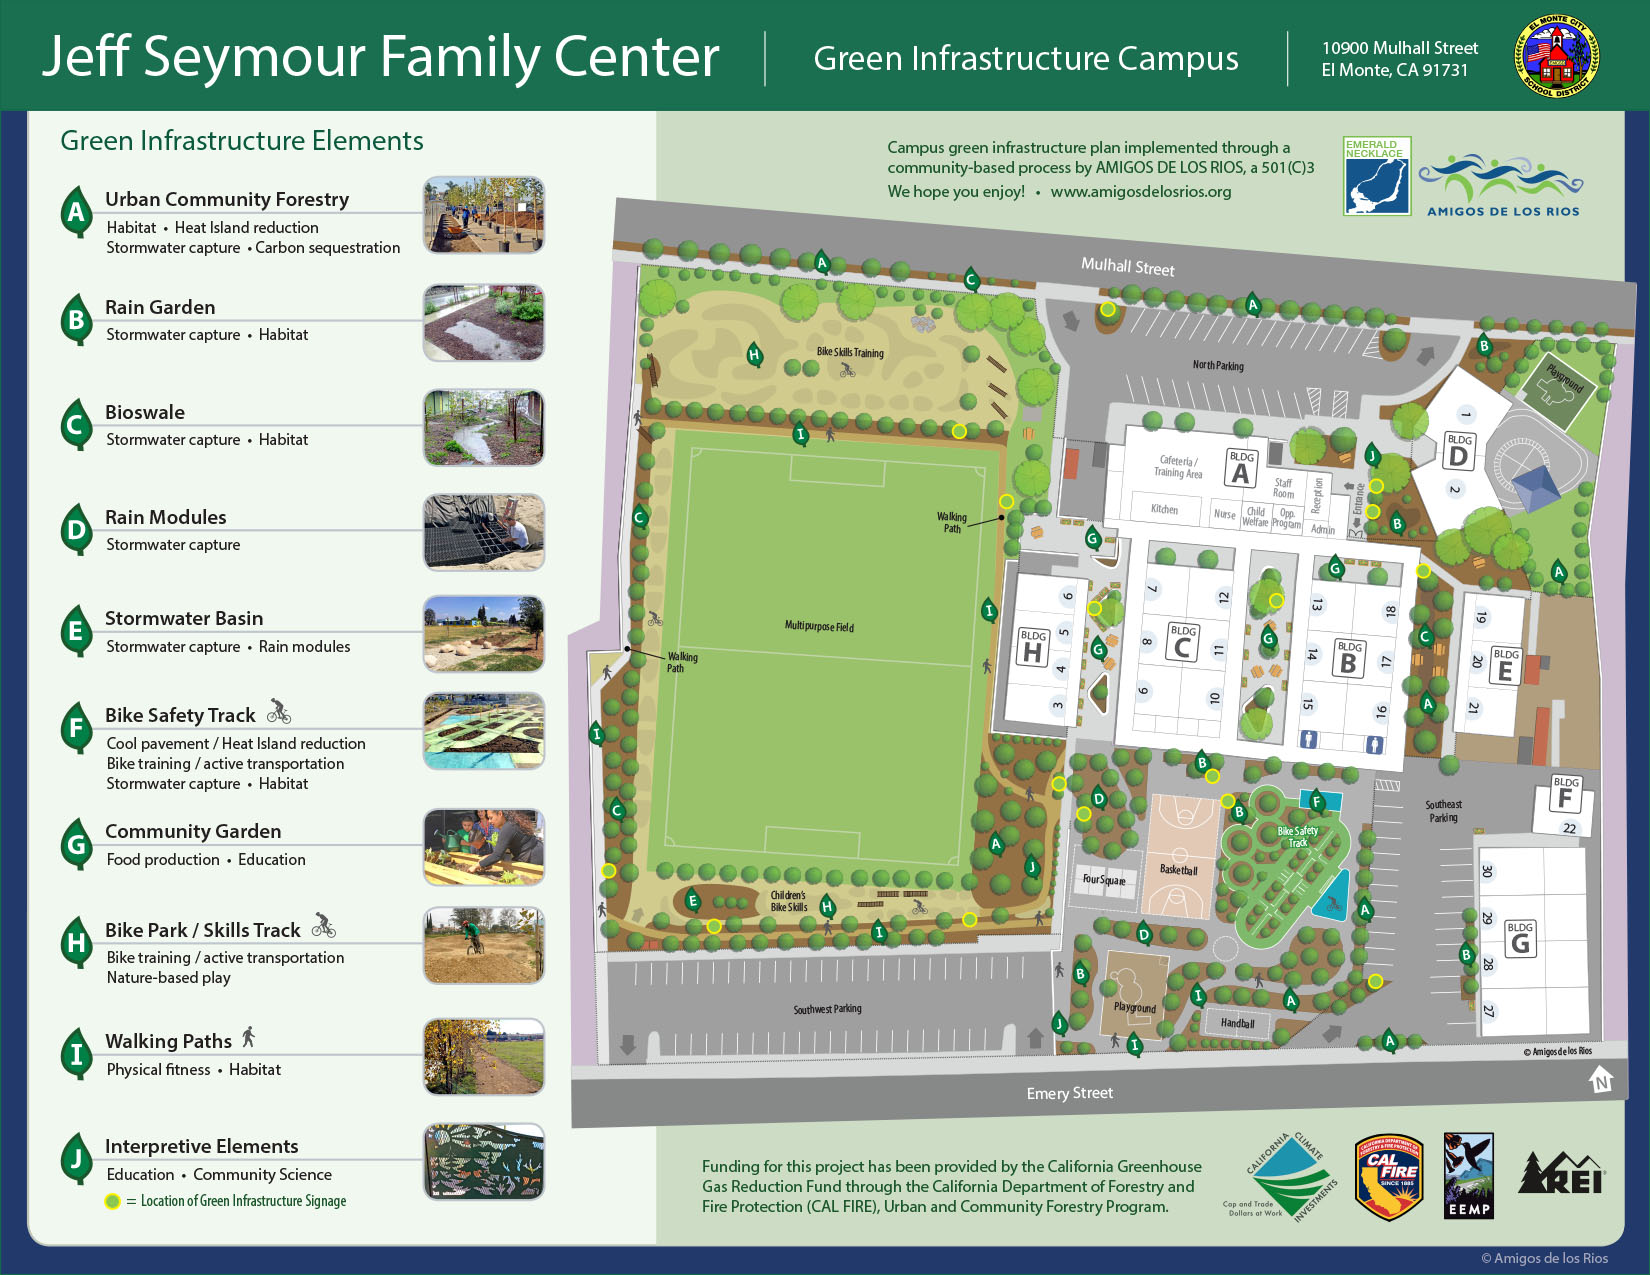 Jeff Seymour Family Center Educational Signage